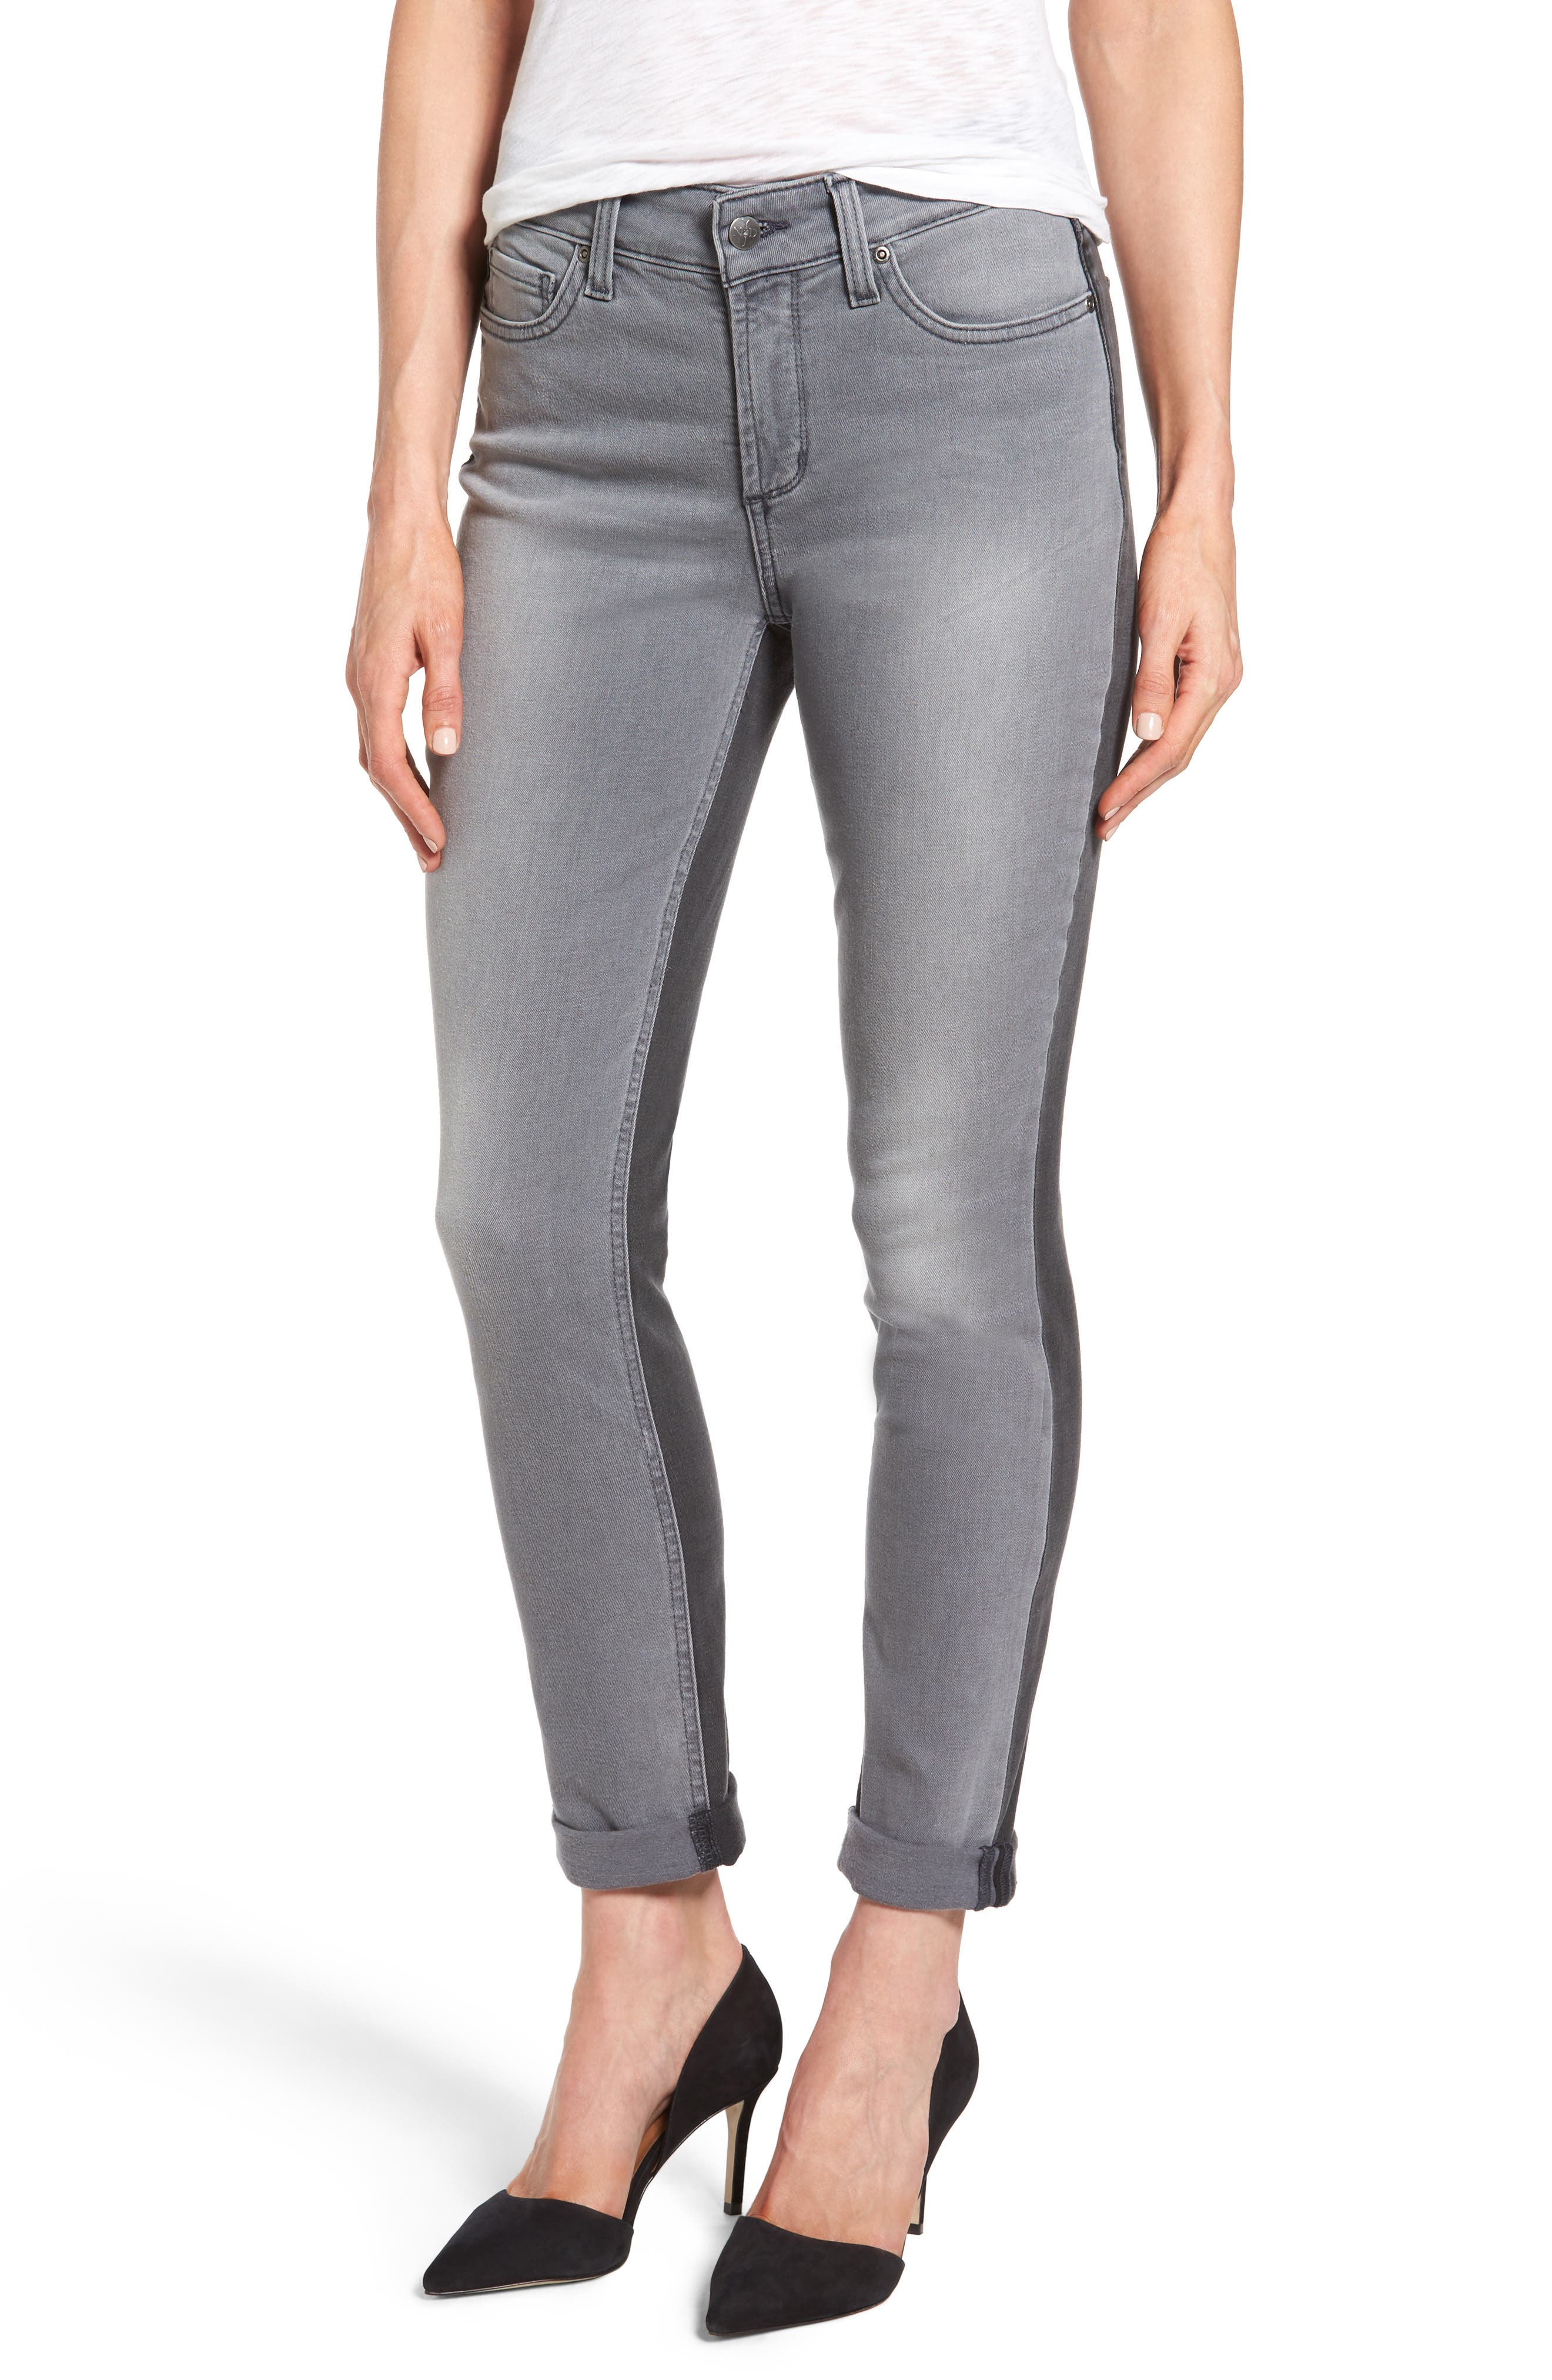 Alternate Image 1 Selected - NYDJ Two Tone Stretch Girlfriend Jeans (Cassiar)